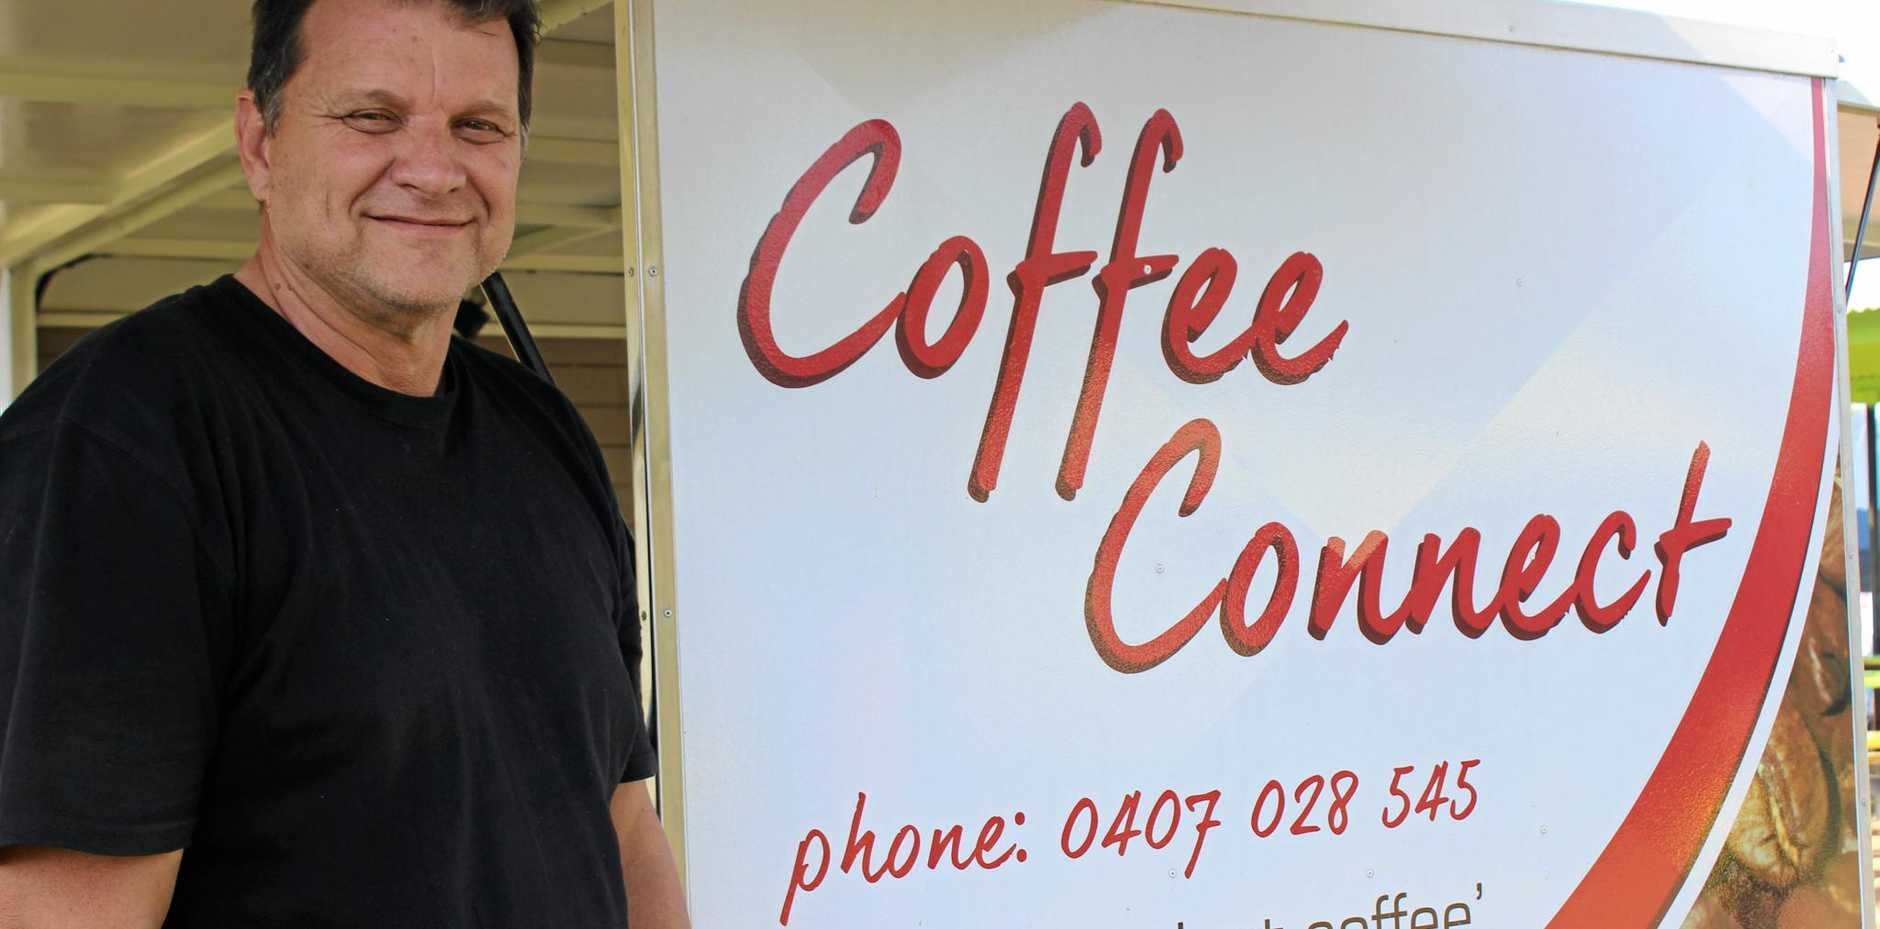 MORE THAN COFFEE: Coffee Connect owner Ron Turner.